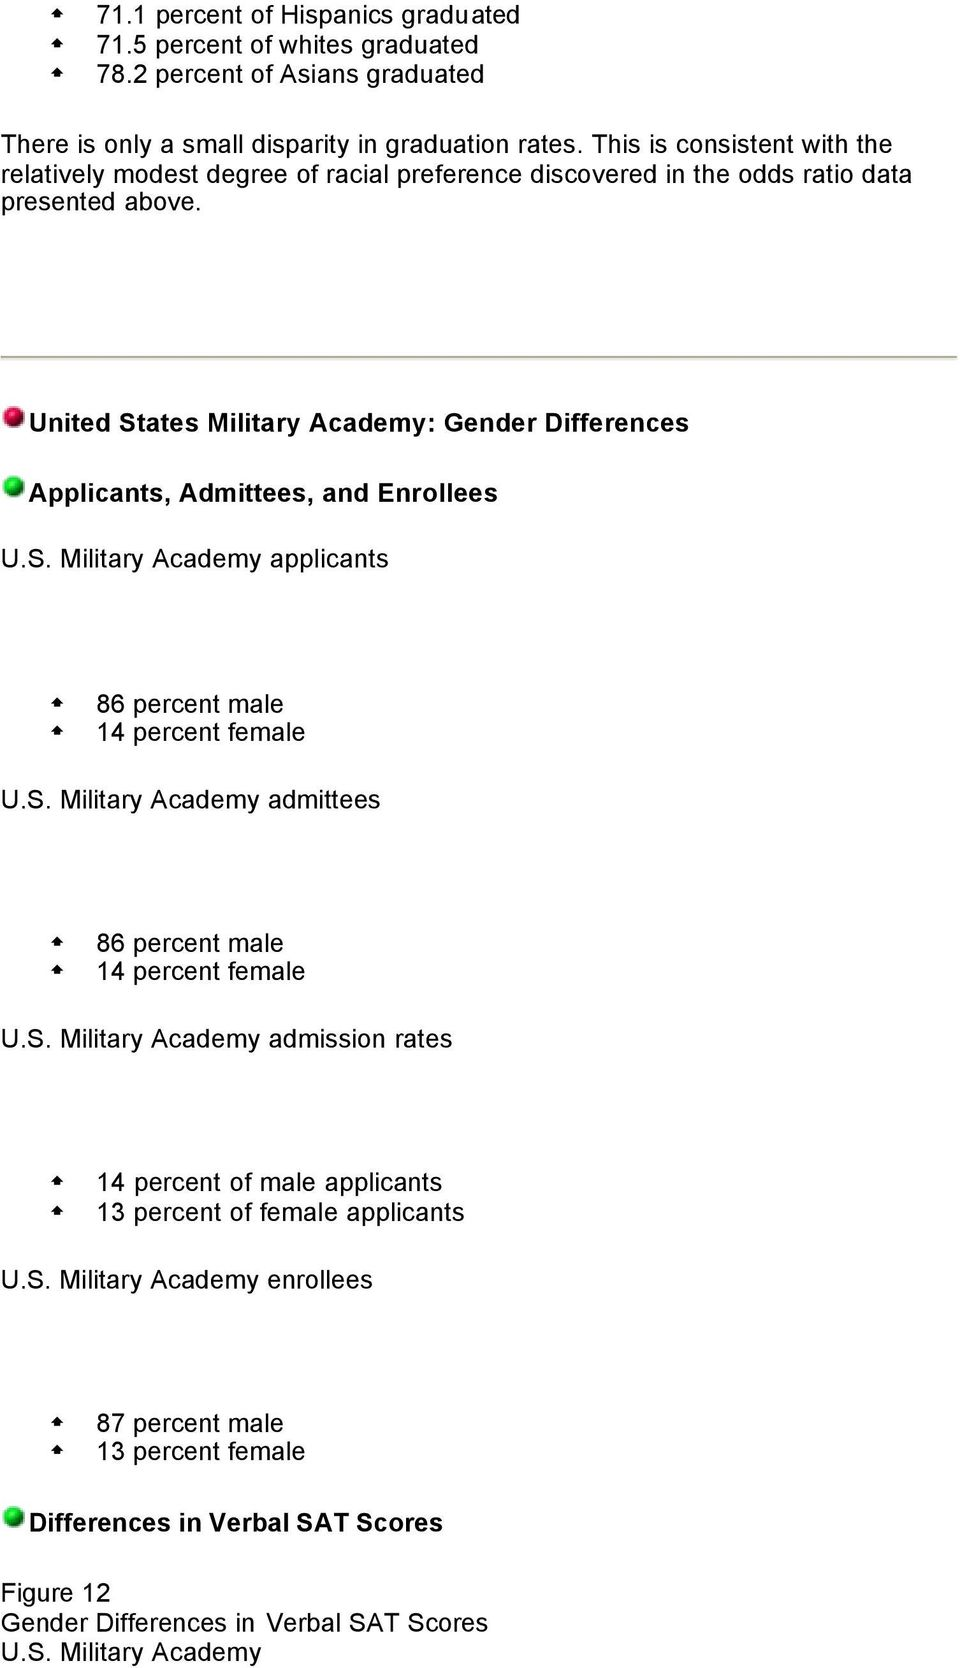 United States Military Academy: Gender Differences Applicants, Admittees, and Enrollees U.S. Military Academy applicants 86 percent male 14 percent female U.S. Military Academy admittees 86 percent male 14 percent female U.